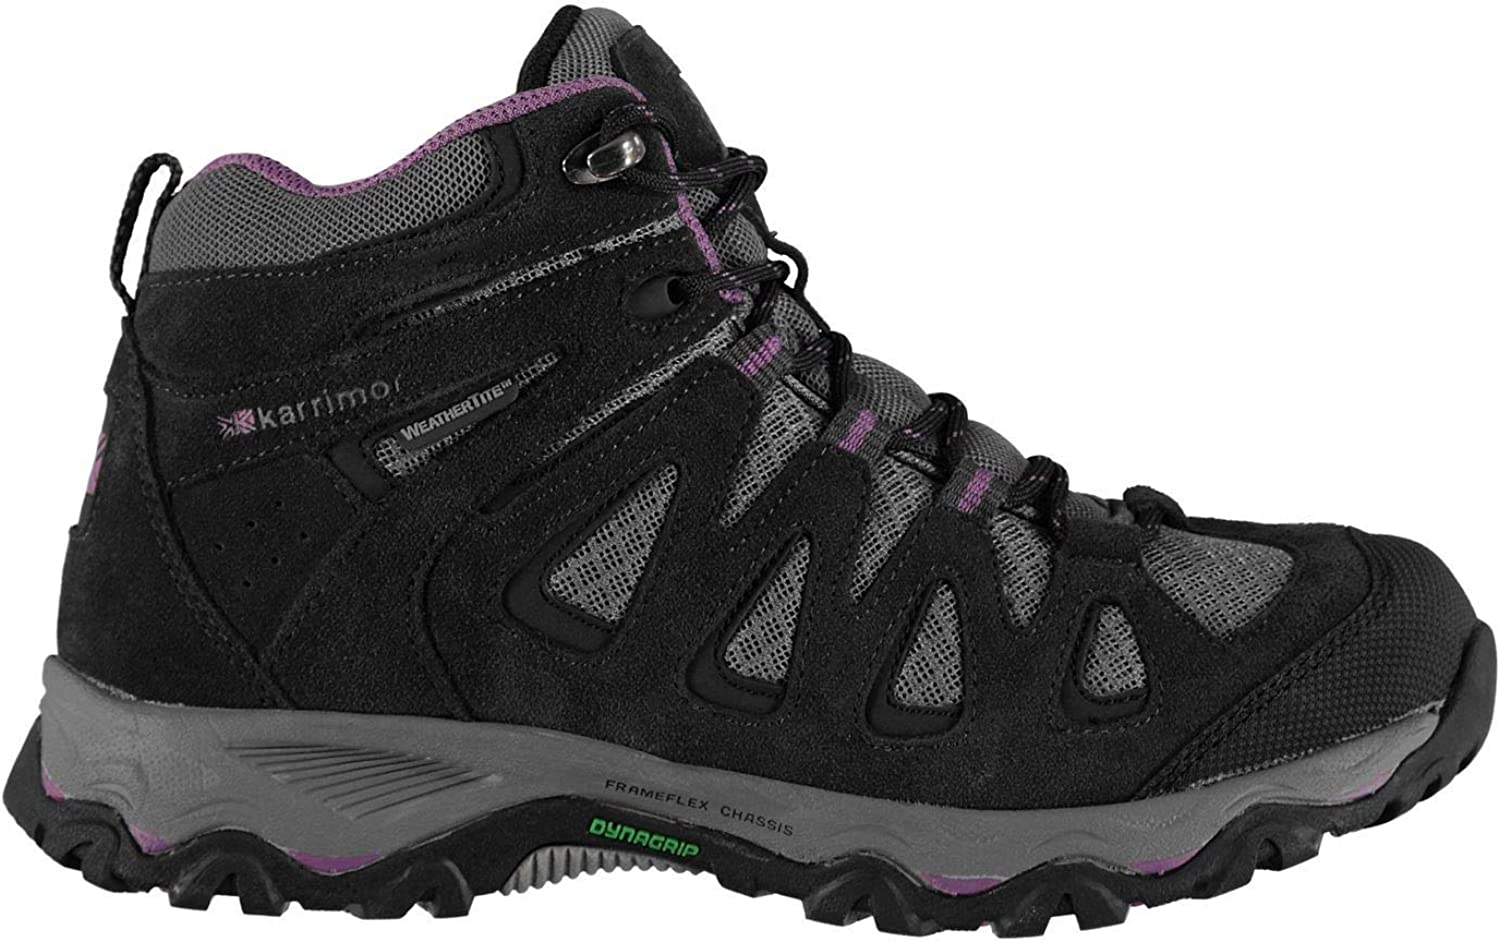 Official Brand Karrimor Thorpe Weathertite Mid Walking Boots Womens Grey Purple Hiking shoes